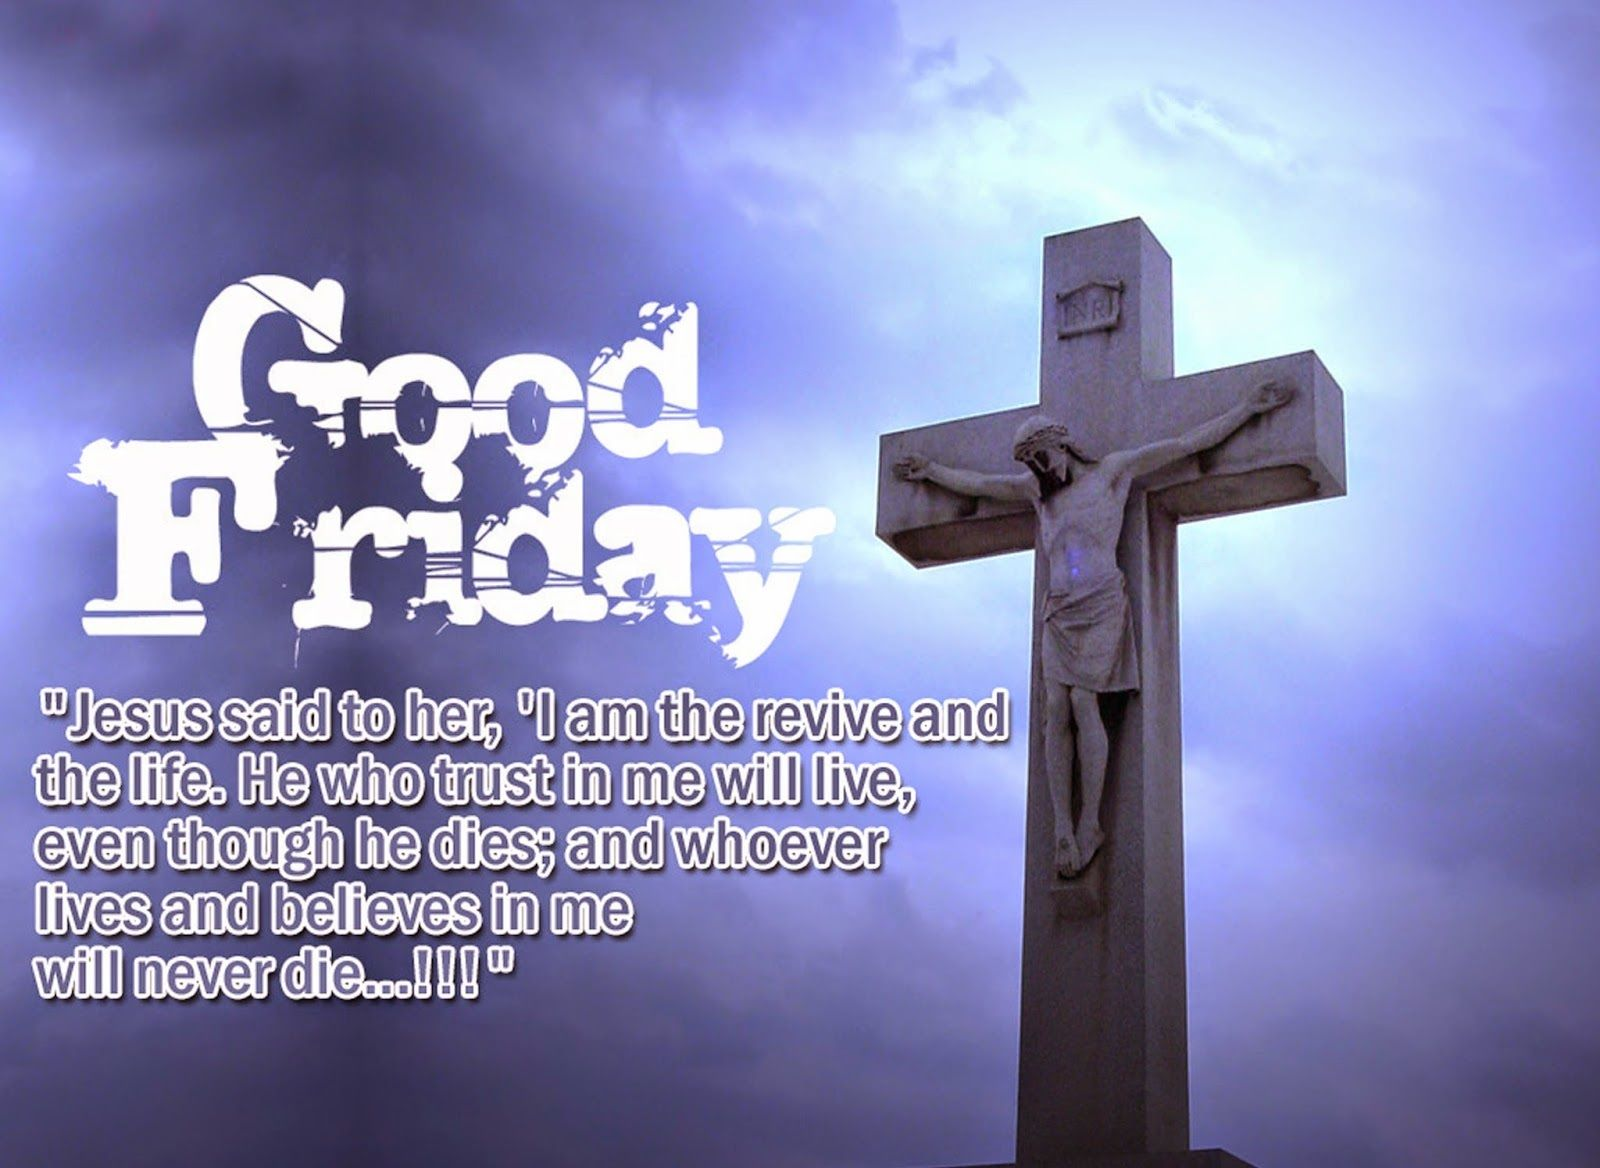 A Very Happy Easter To All. May This Fesival Bring Joy And Happiness To Everyone's Life And May You Grow in Lord Day By Day. PRAISE THE LORD  AMEN